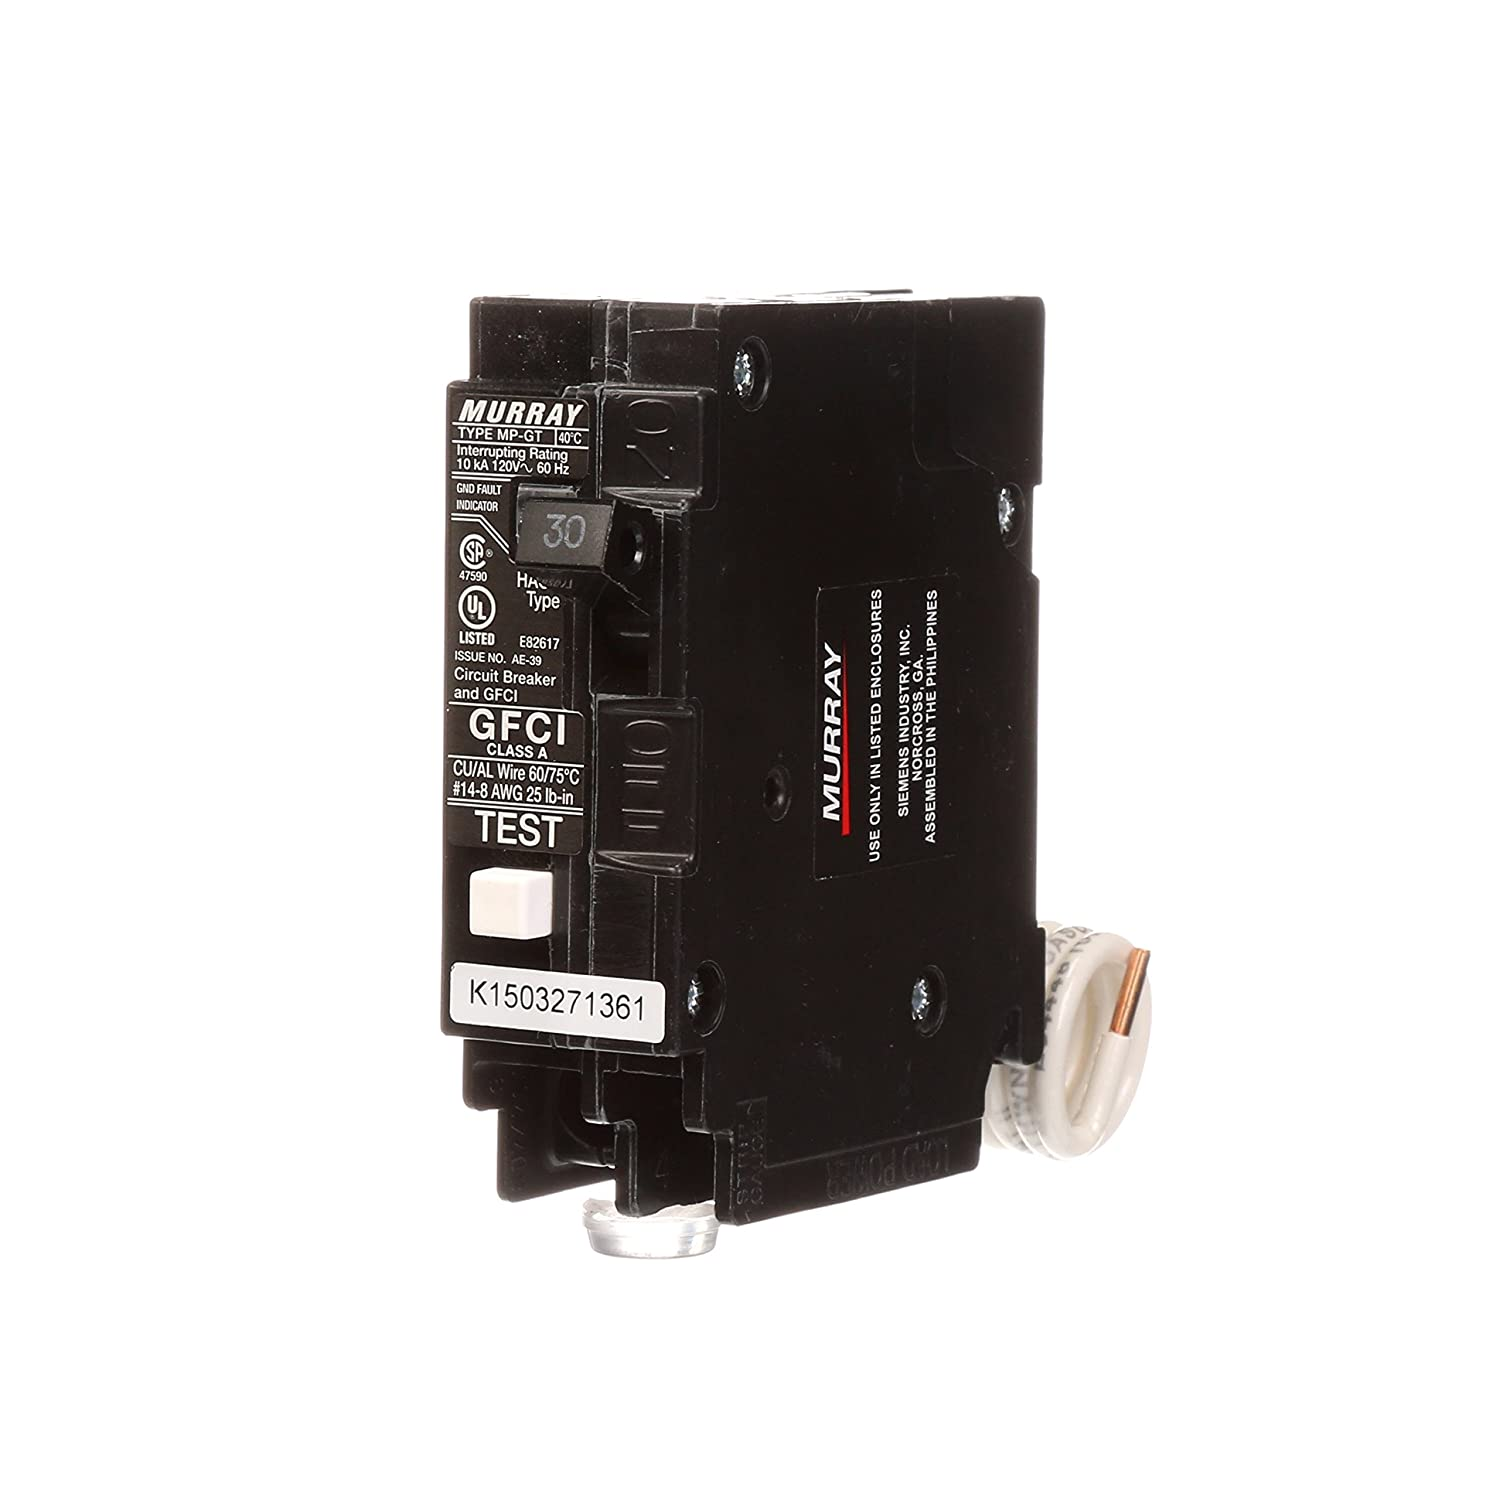 Murray MP130GFA 30 Amp Single Pole GFCI Circuit Breaker with Self Test &  Lockout Feature